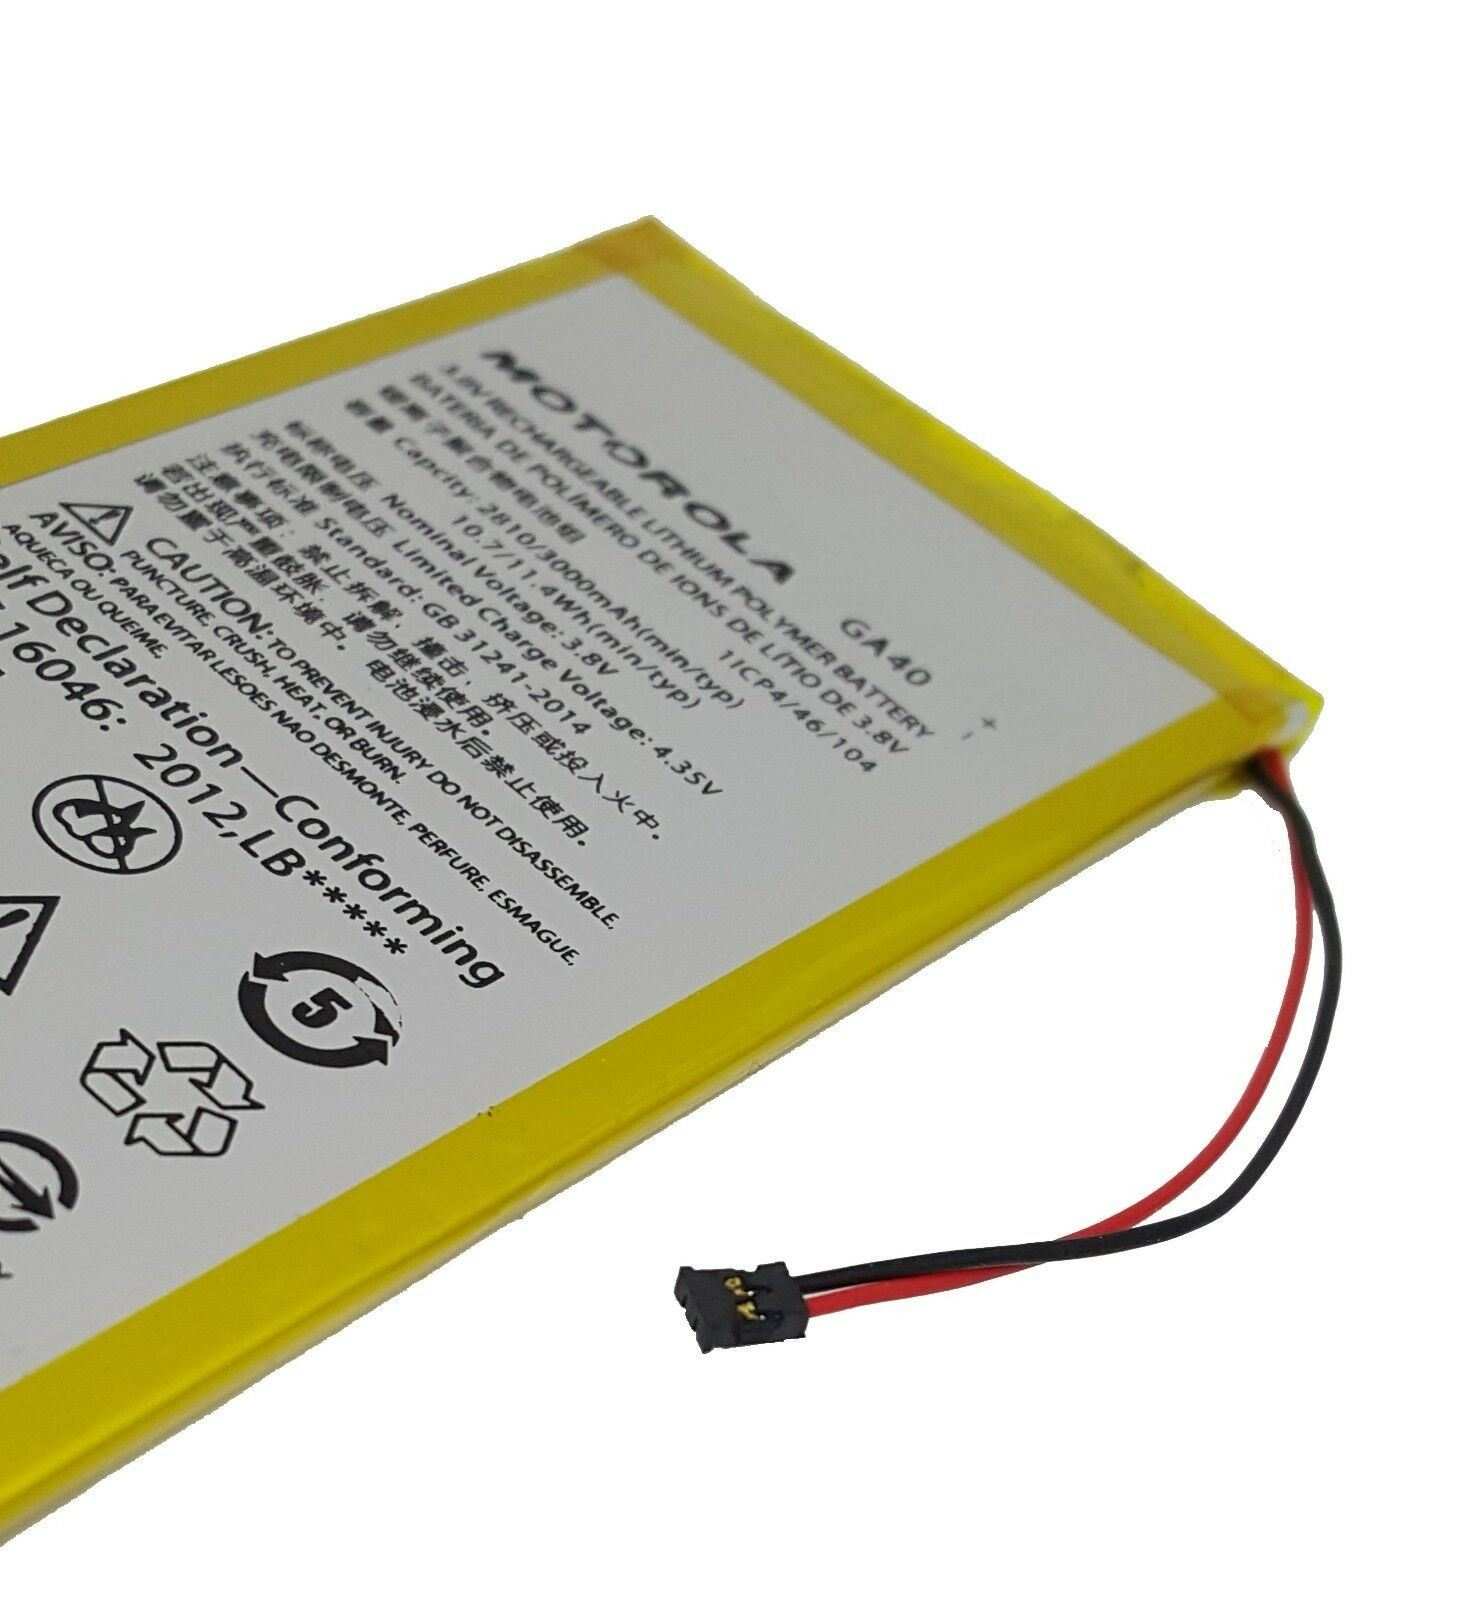 Original Motorola GA40 3000 mAh Battery for Moto G4 XT1622 XT1625 G4 Plus XT1644 Pic2